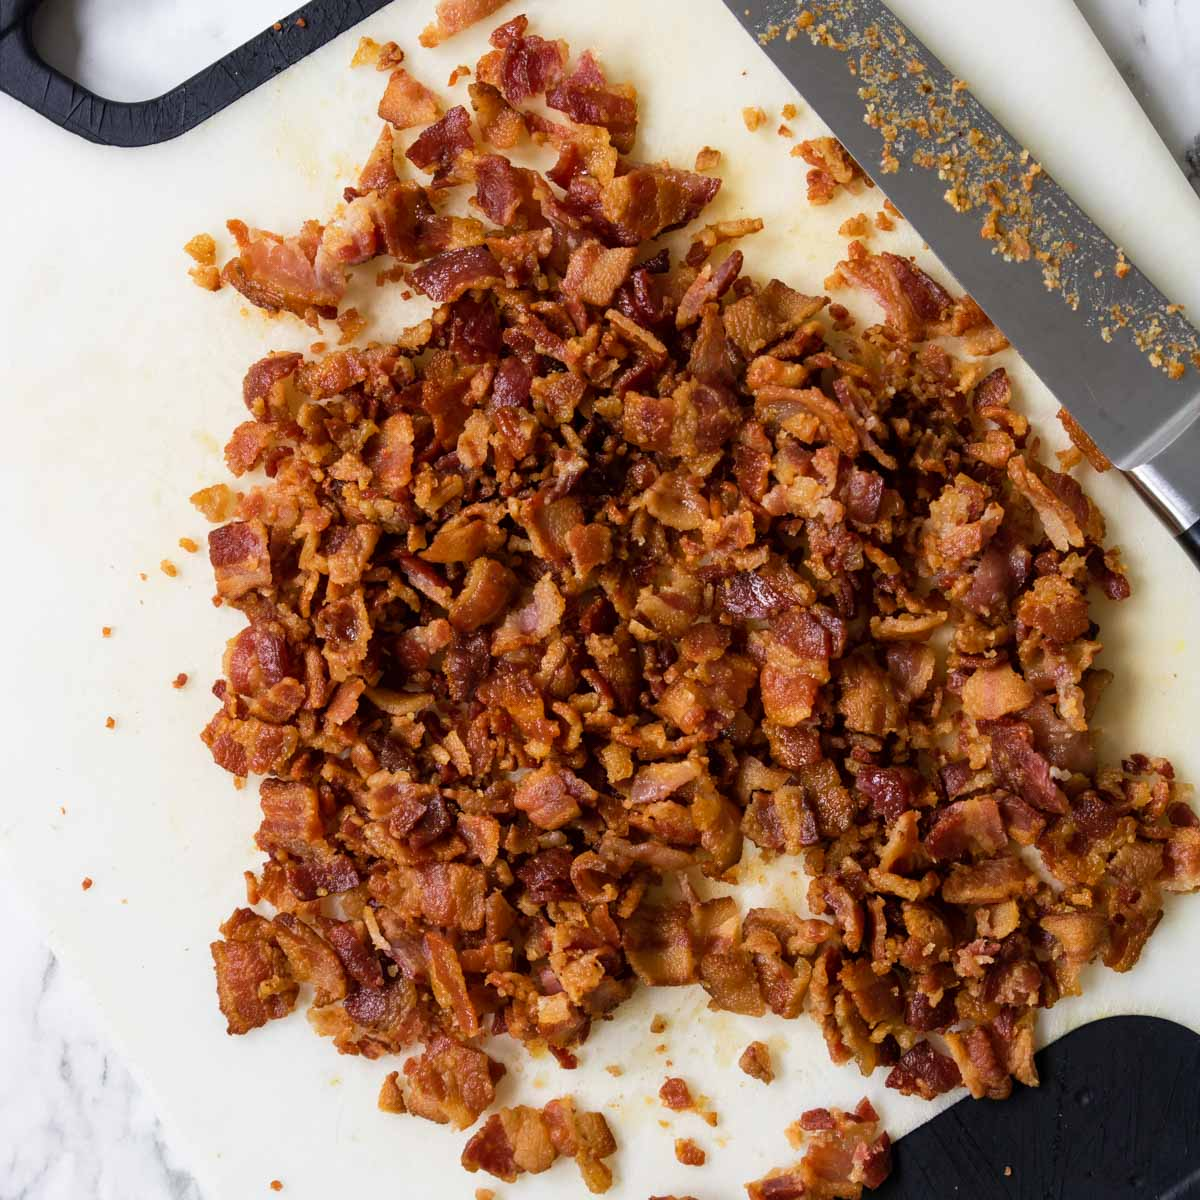 Cooked bacon chopped into bite sized pieces